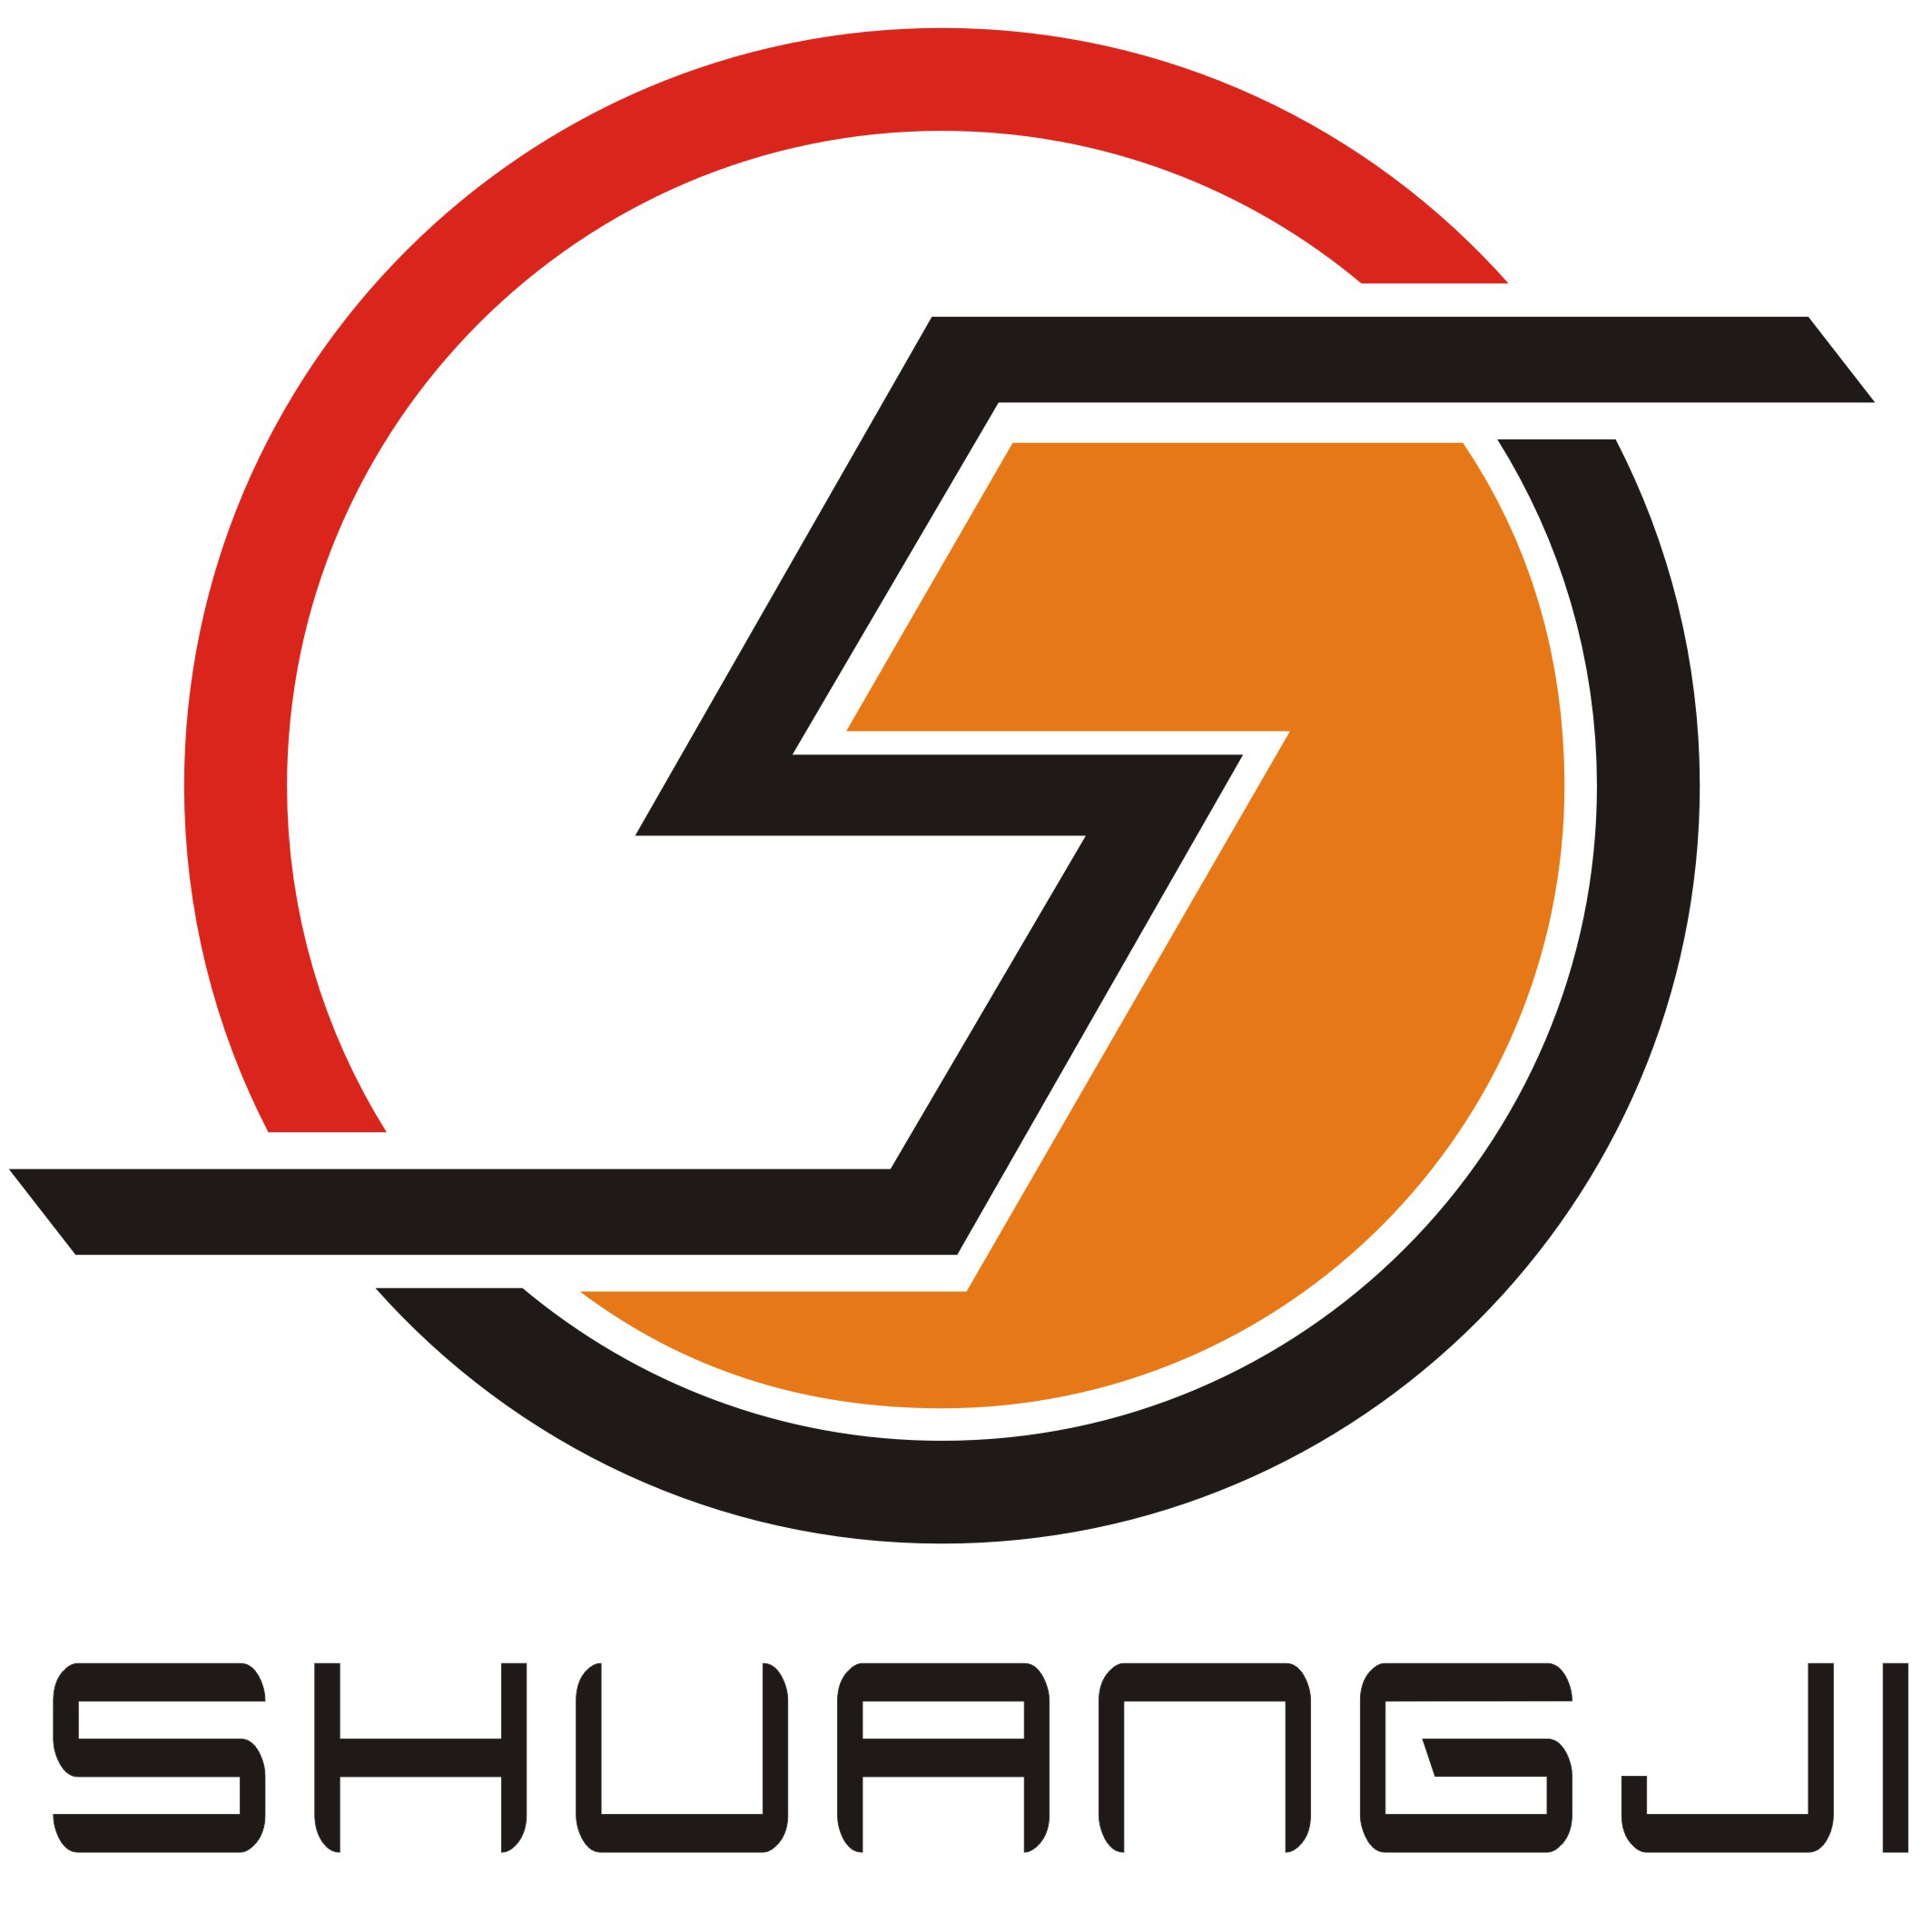 Liuzhou Shuangji Machinery Co., Ltd